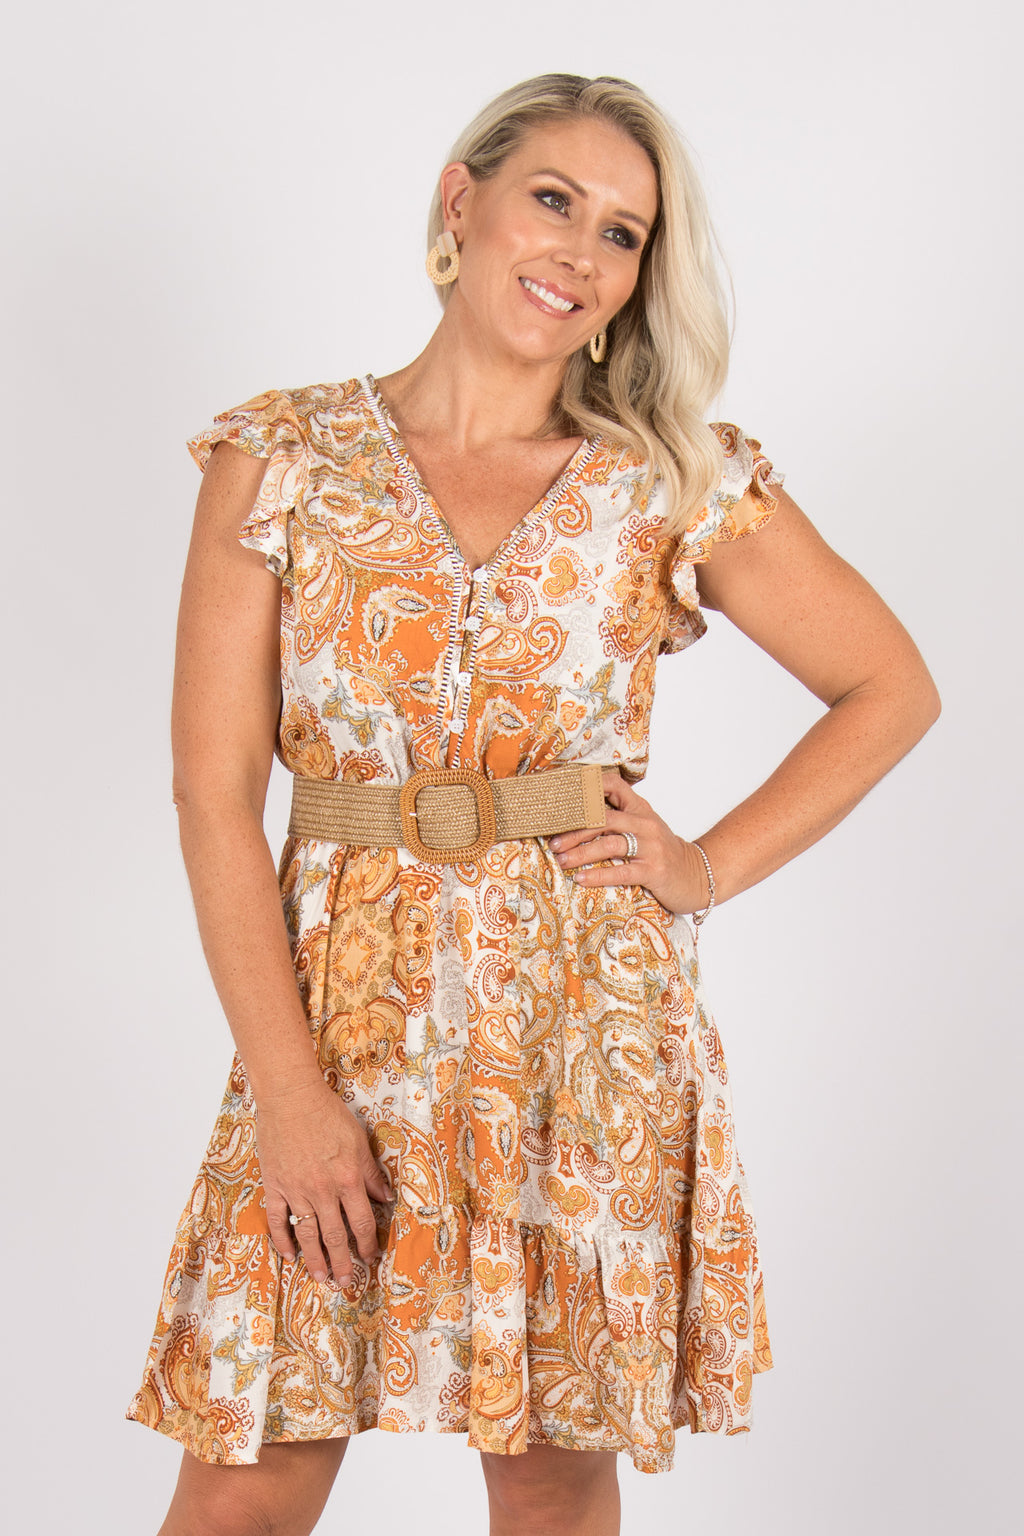 Milsons Dress in Orange Paisley